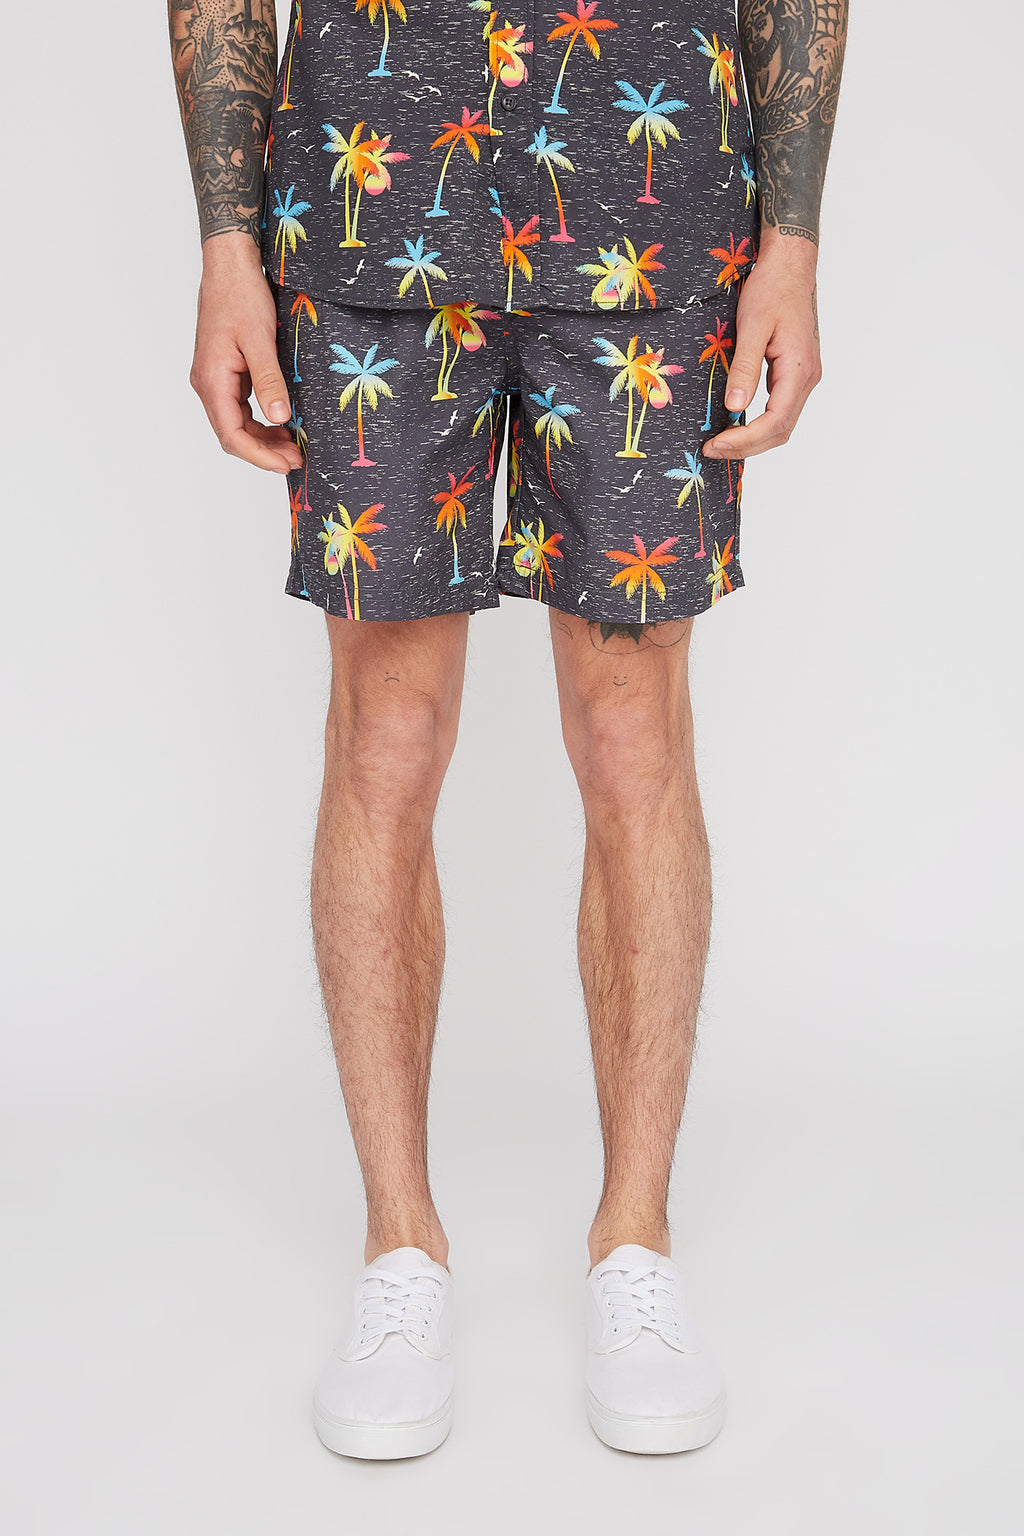 Zoo York Mens Graphic Pull-On Beach Shorts